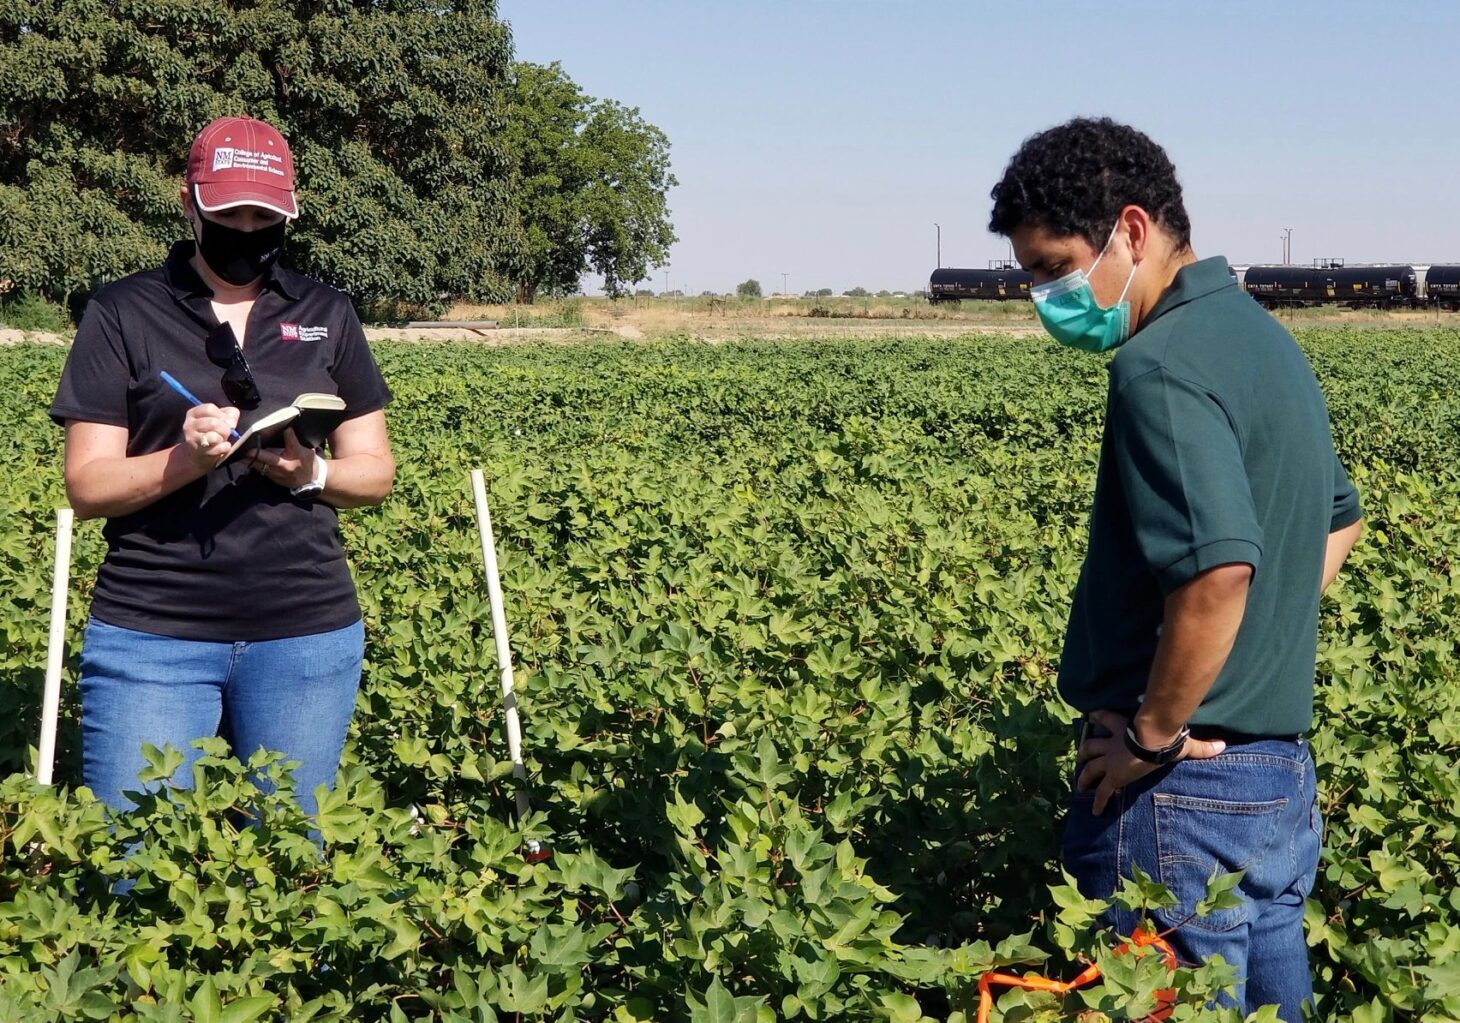 Graduate entomology student Iván Tellez, right, explains his thesis research on bollworm control in an arid microclimate to Leslie Edgar, New Mexico State University College of Agricultural, Consumer and Environmental Sciences associate dean and director of research. Tellez is one of two NMSU graduate students to win awards for their research presentations at the 2021 International Arid Lands Consortium Conference.  |  NMSU photo by Jane Pierce